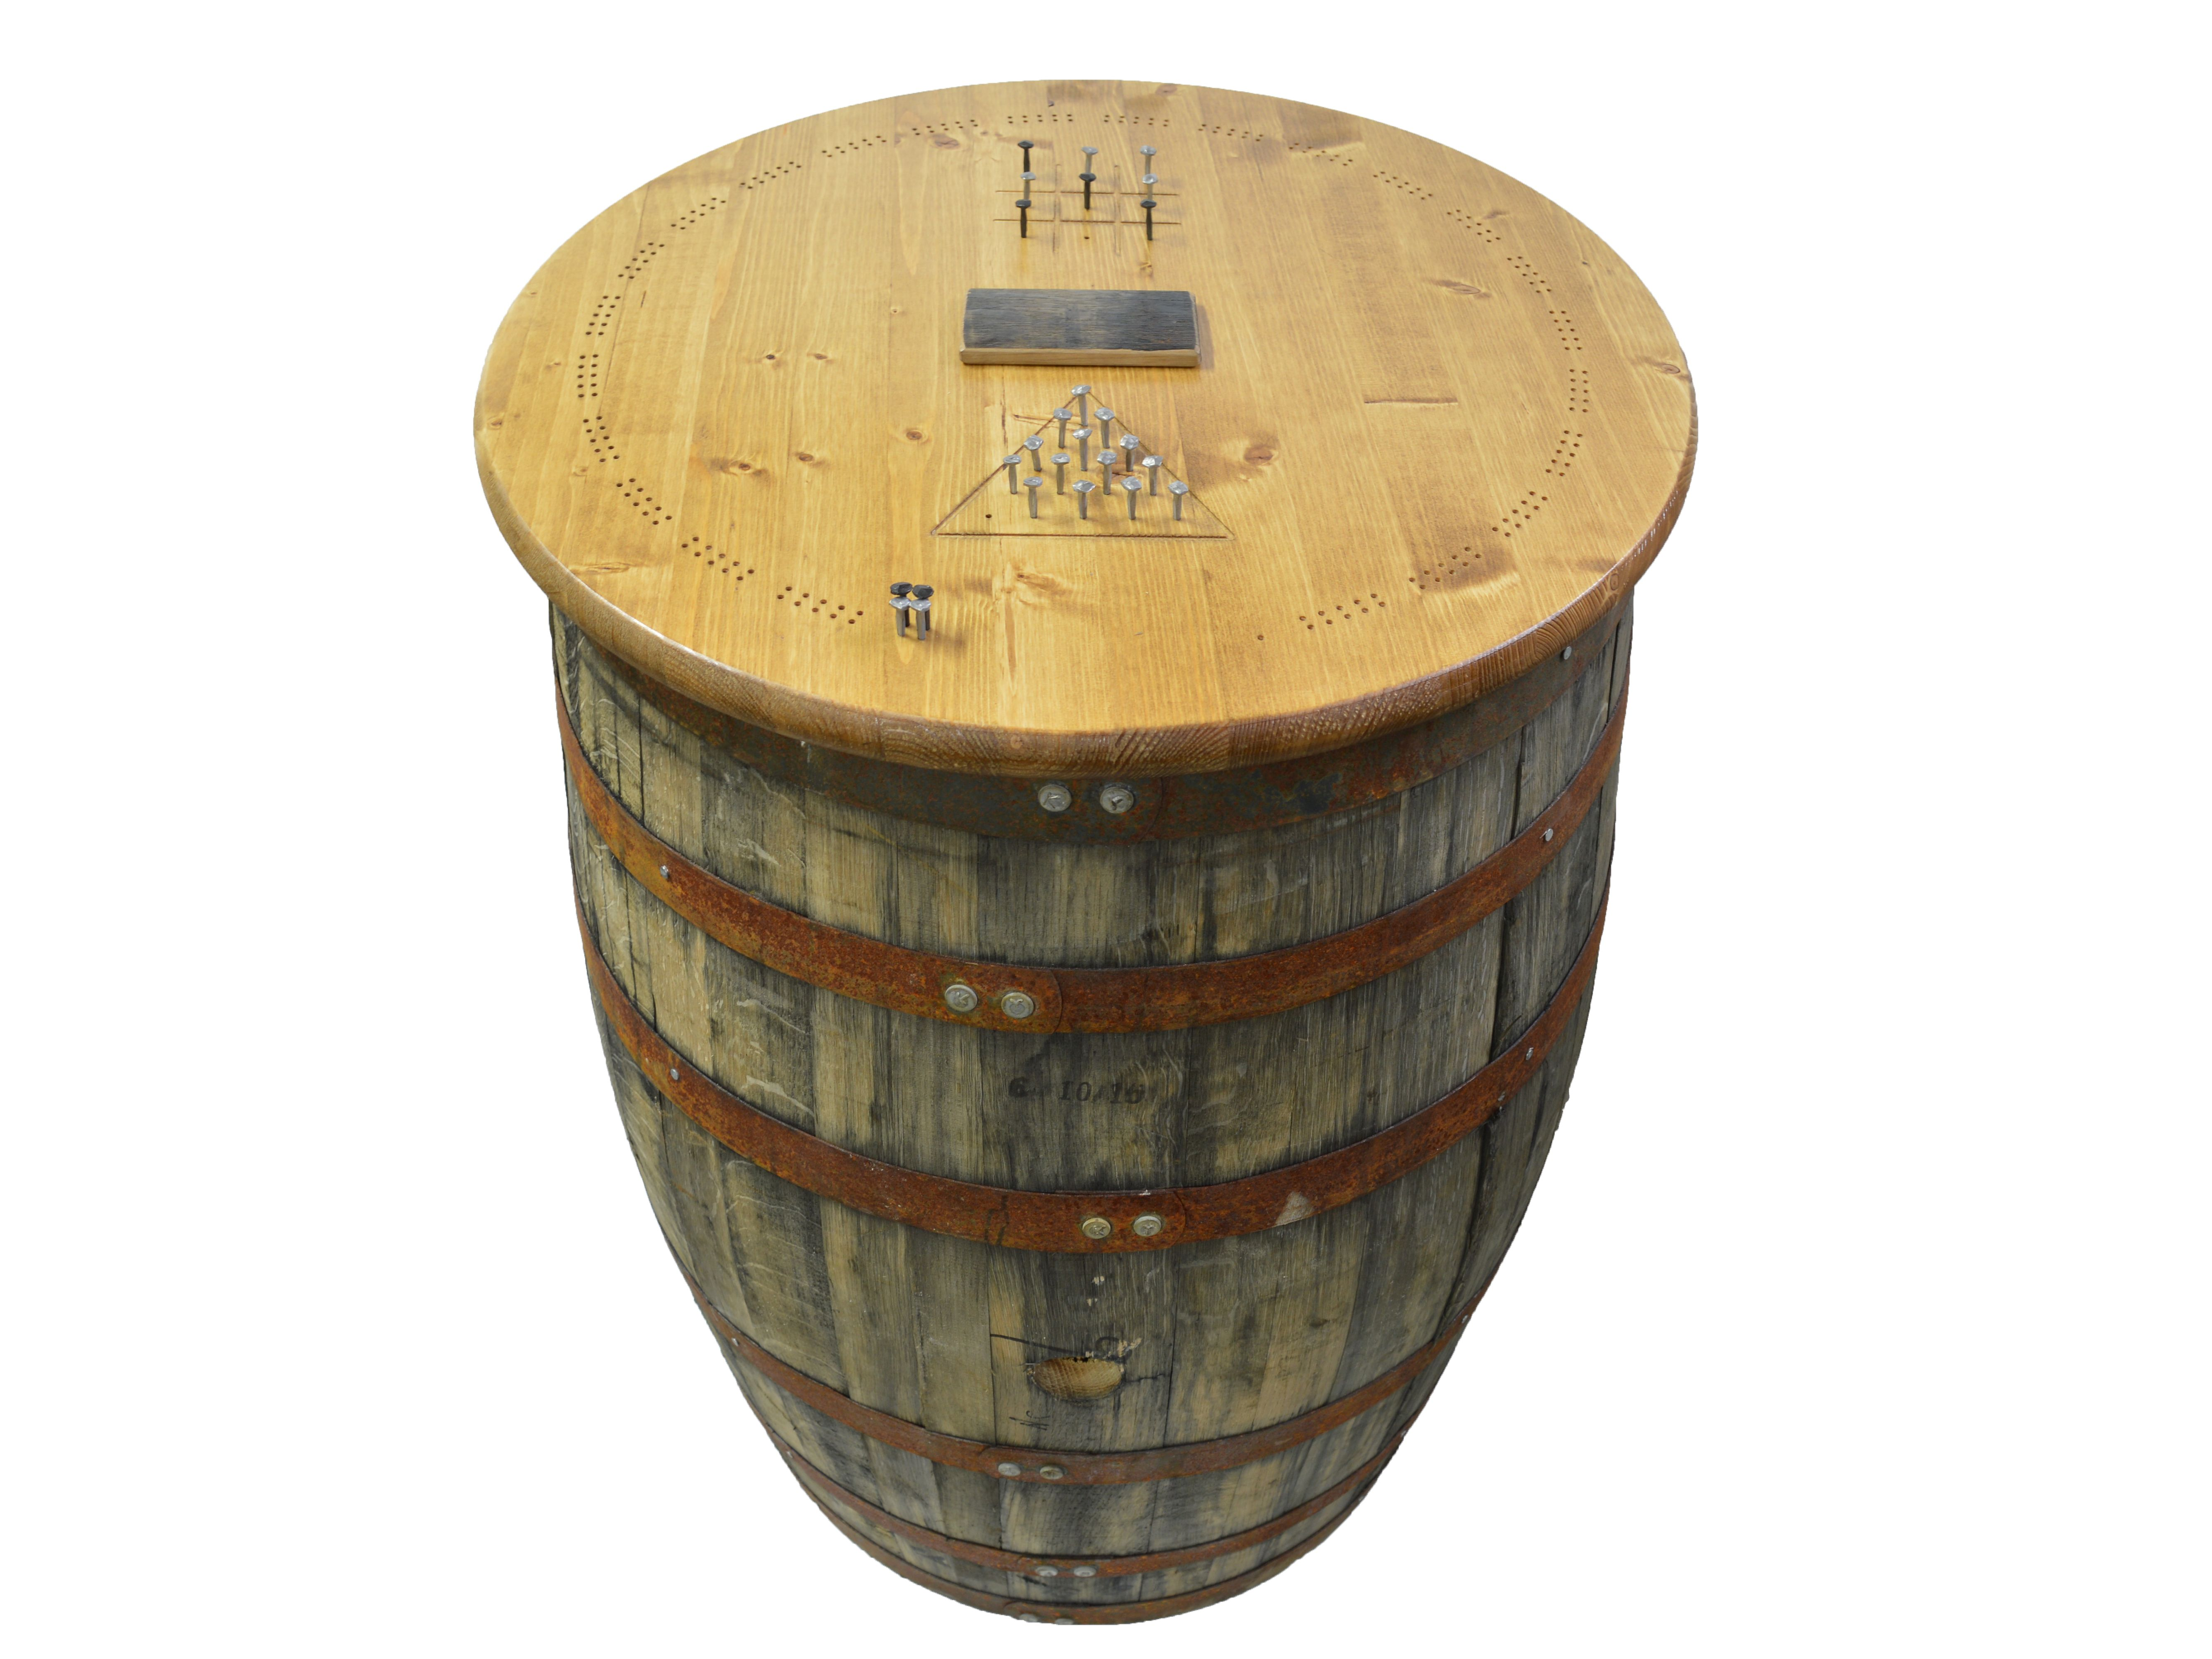 Custom Whiskey Barrel With Game Board Top For A Local Charity